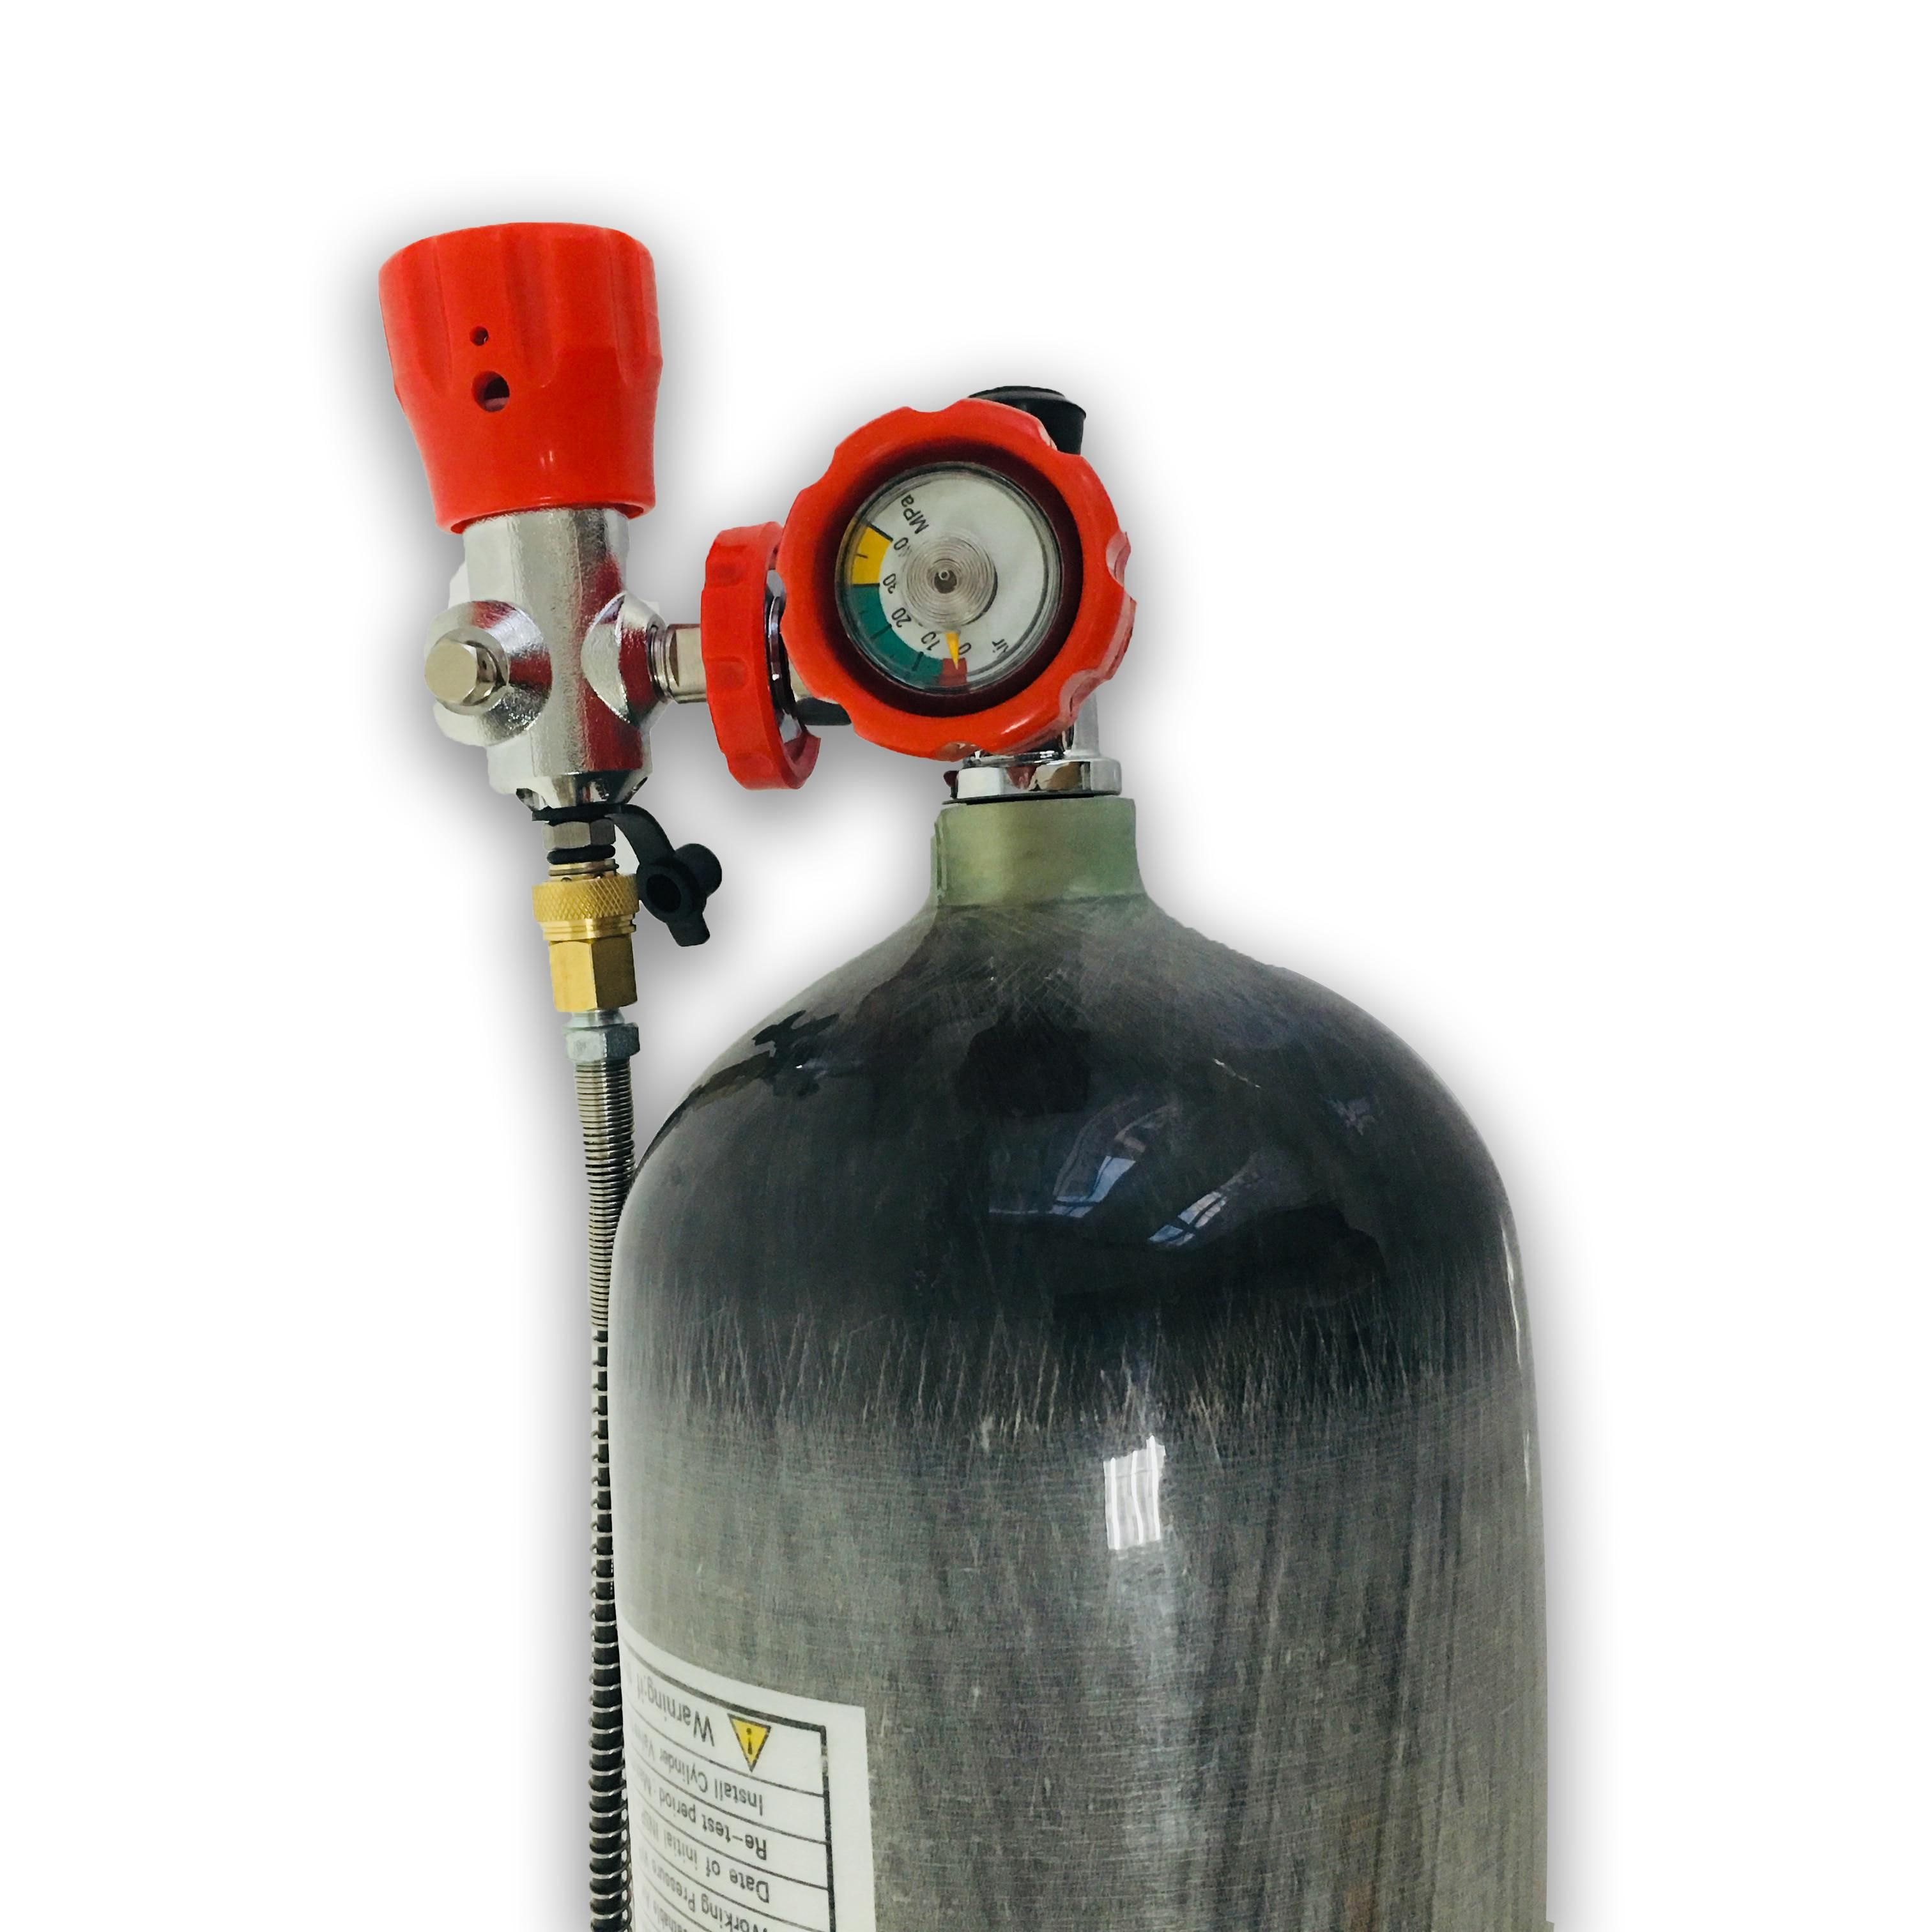 Pin on Fire Protection